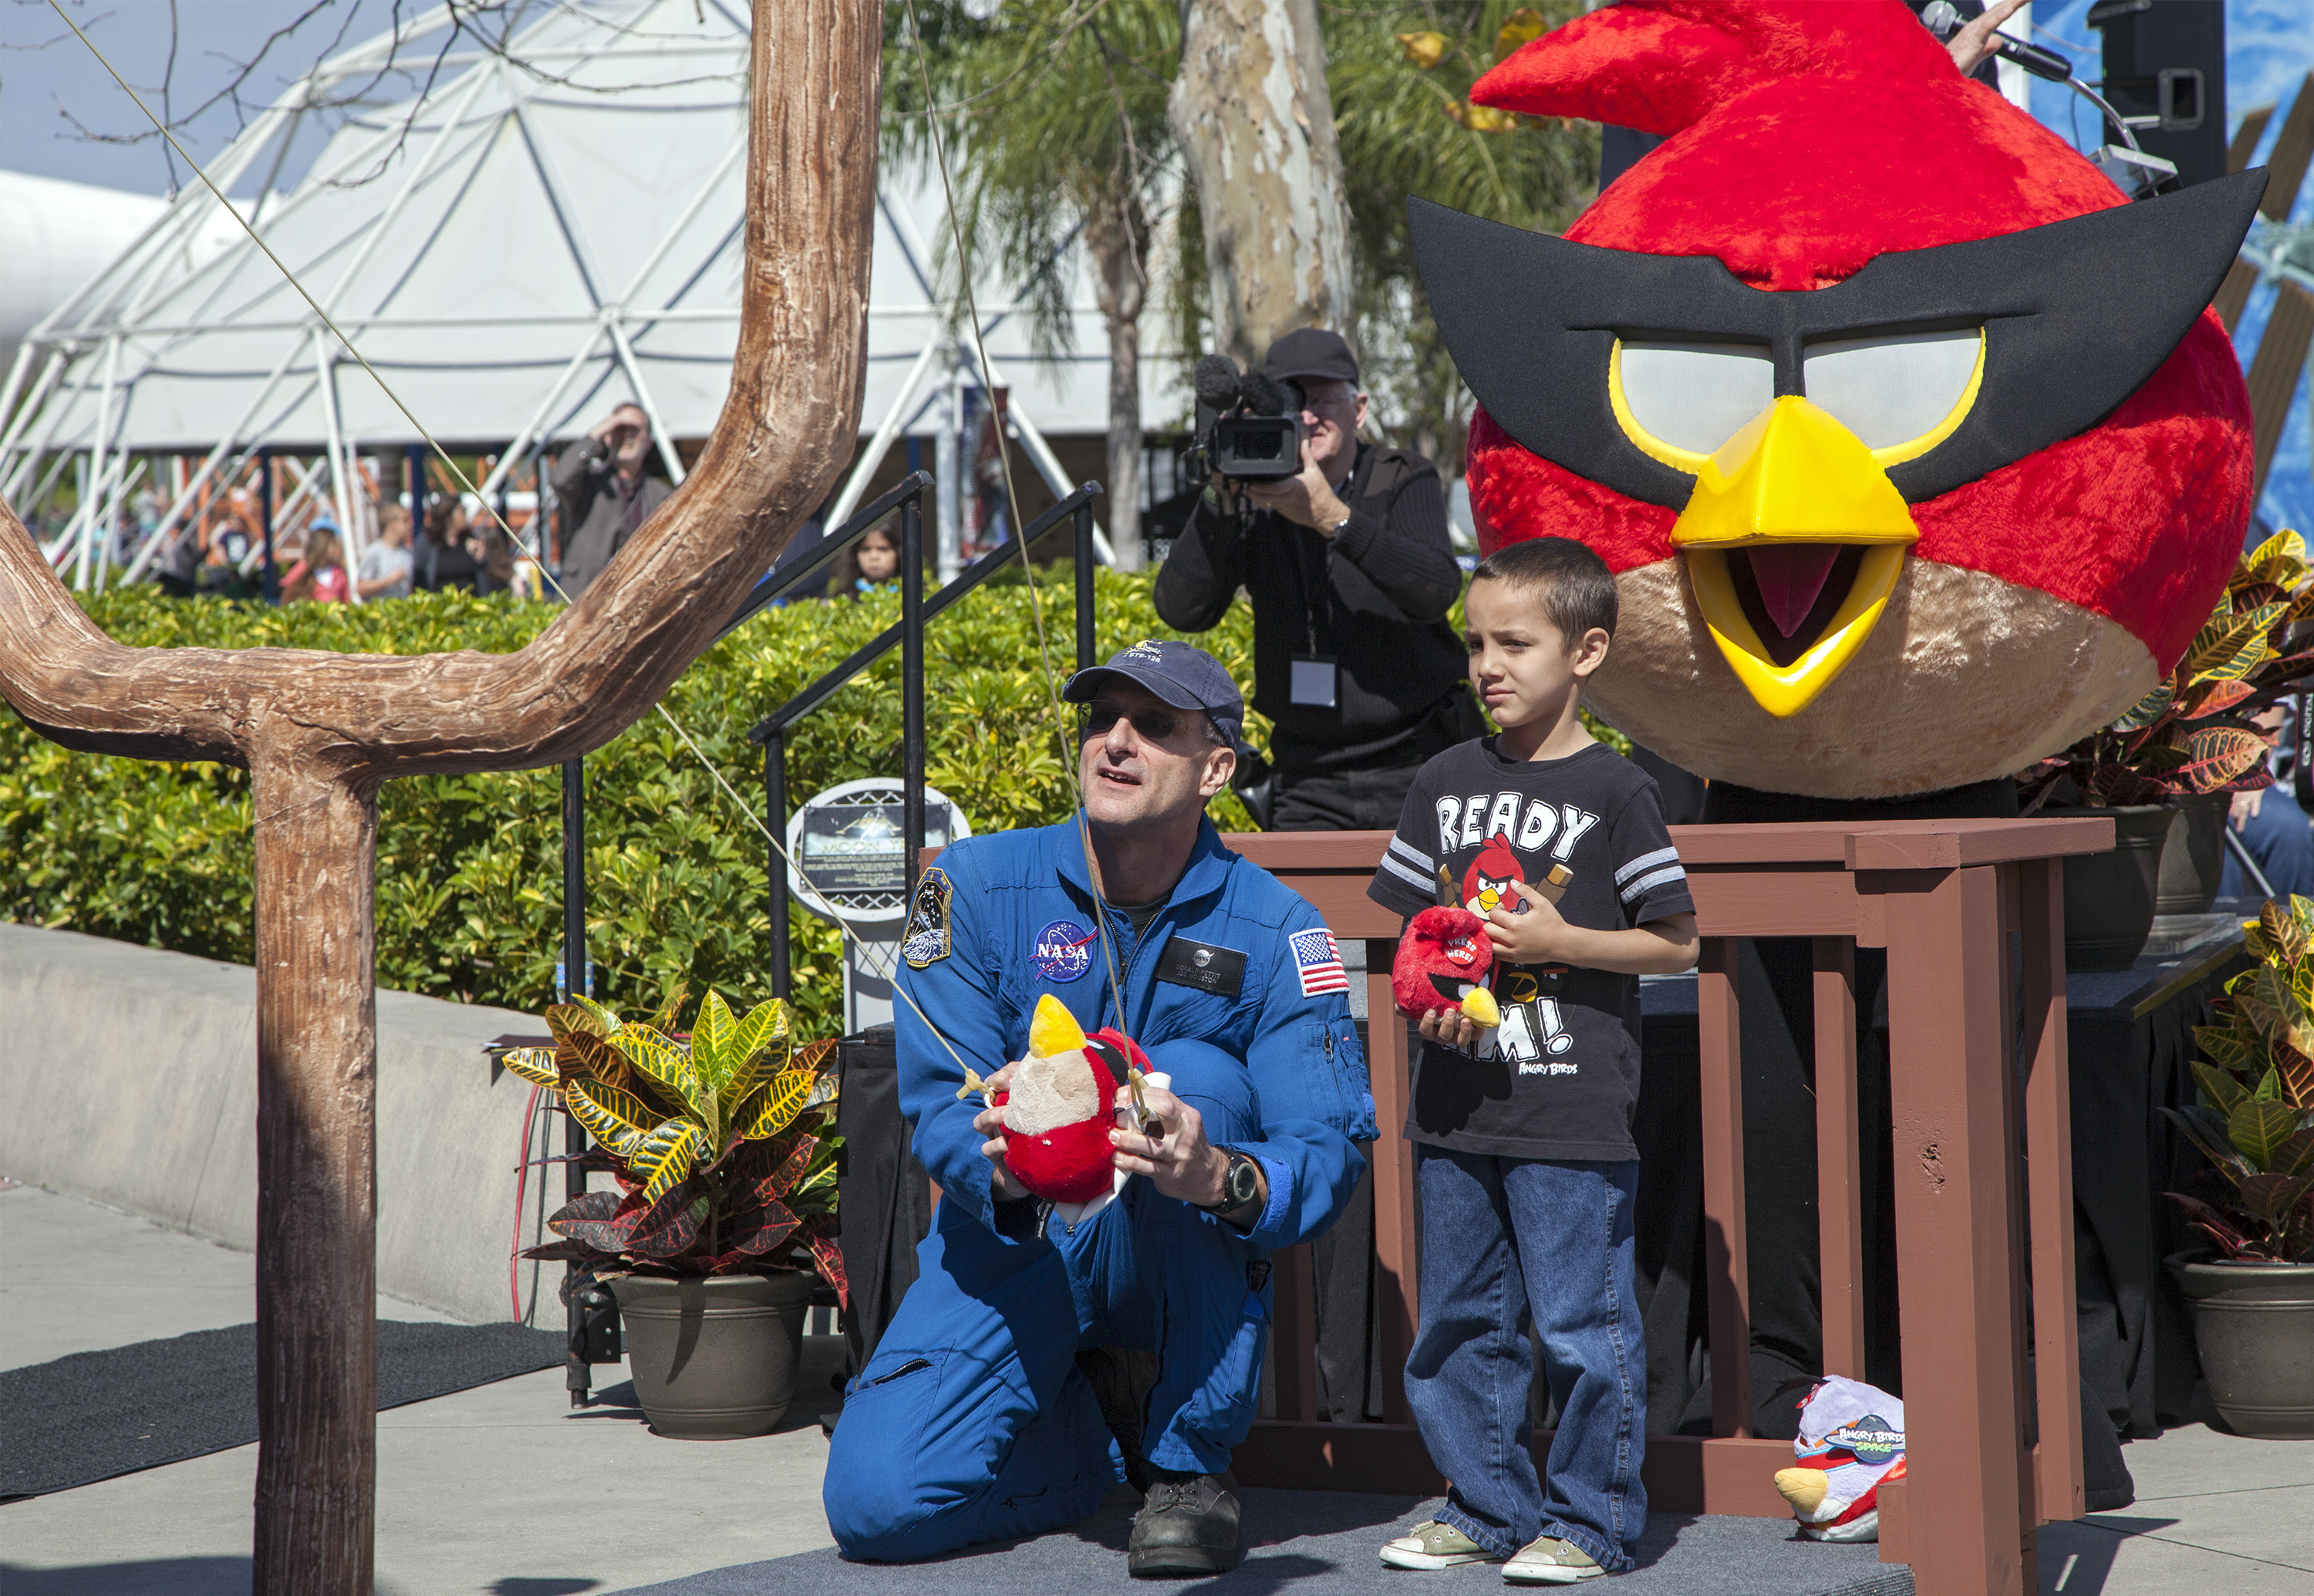 Don Pettit Launches Plush Angry Bird